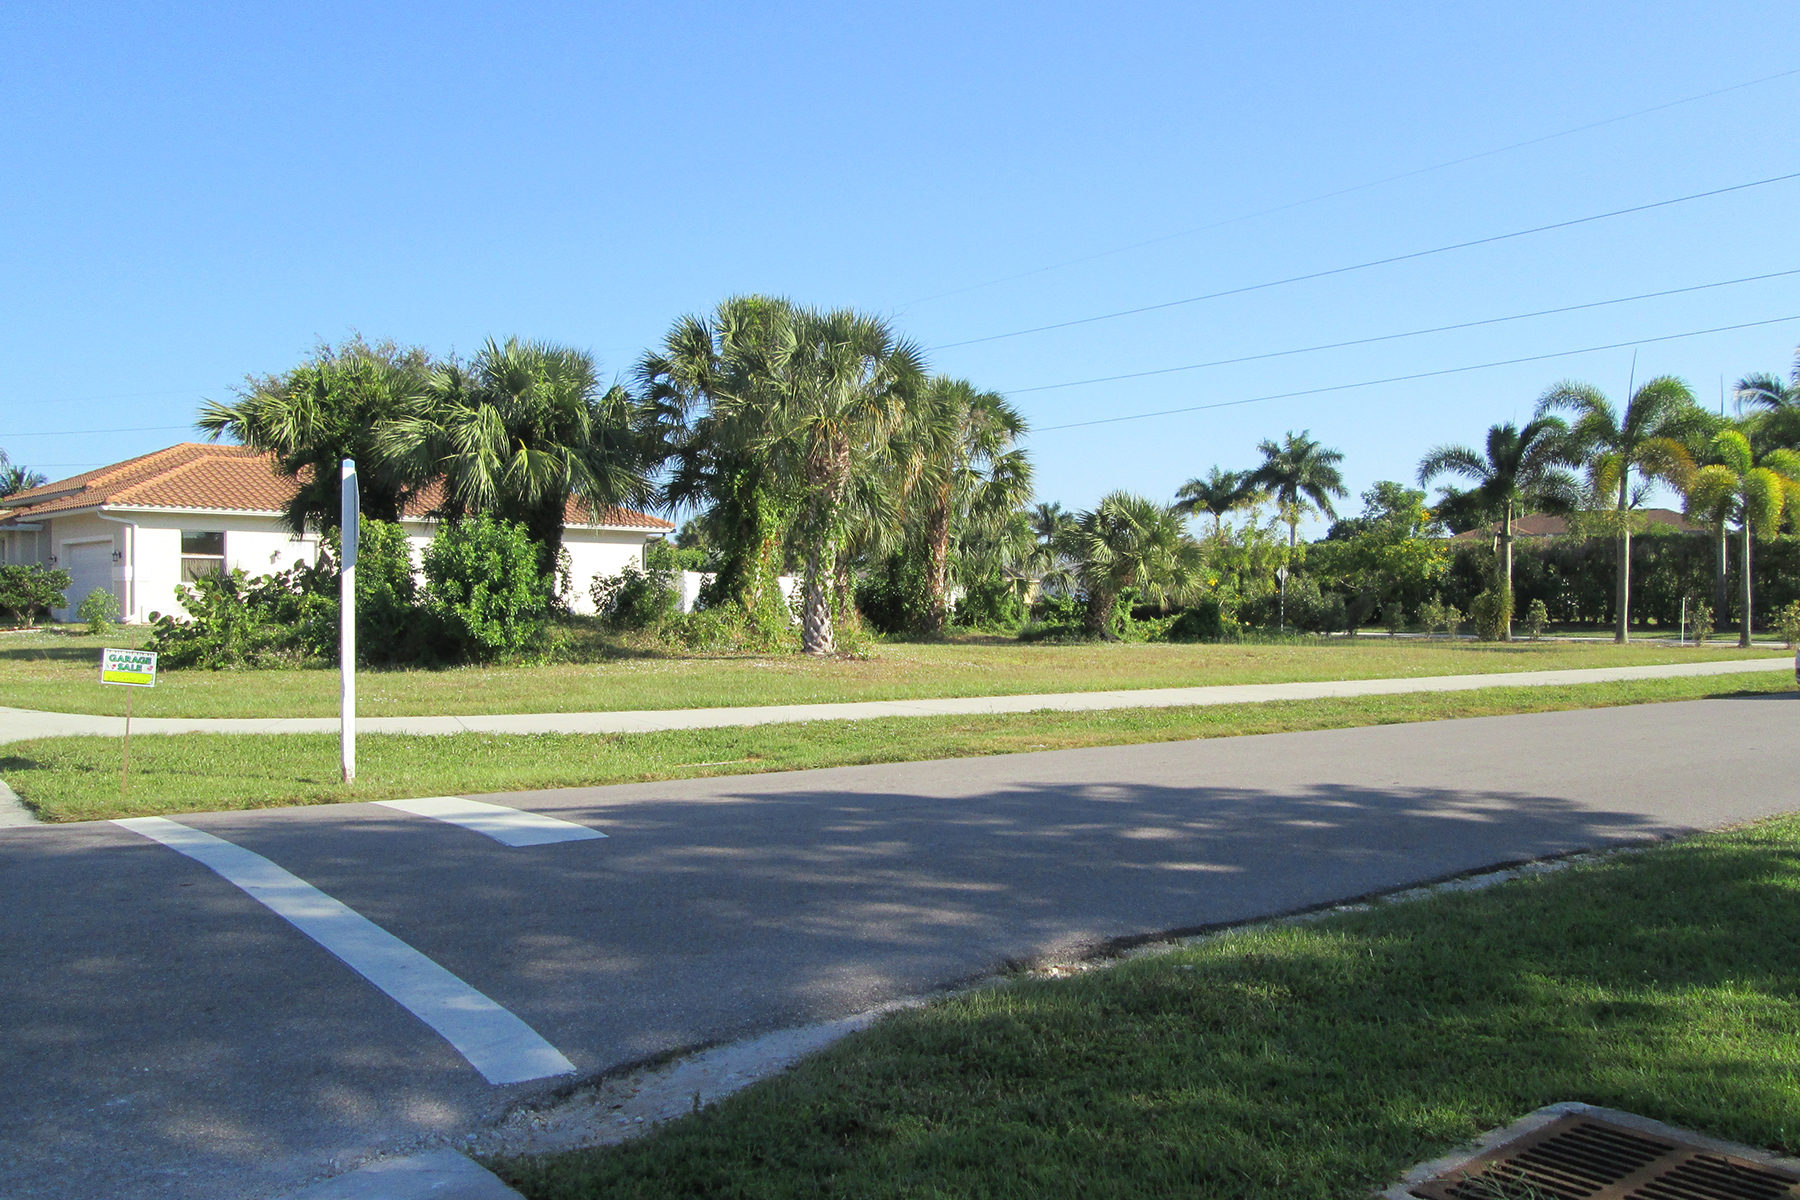 Land for Sale at MARCO ISLAND 1310 Andalusia Marco Island, Florida, 34145 United States